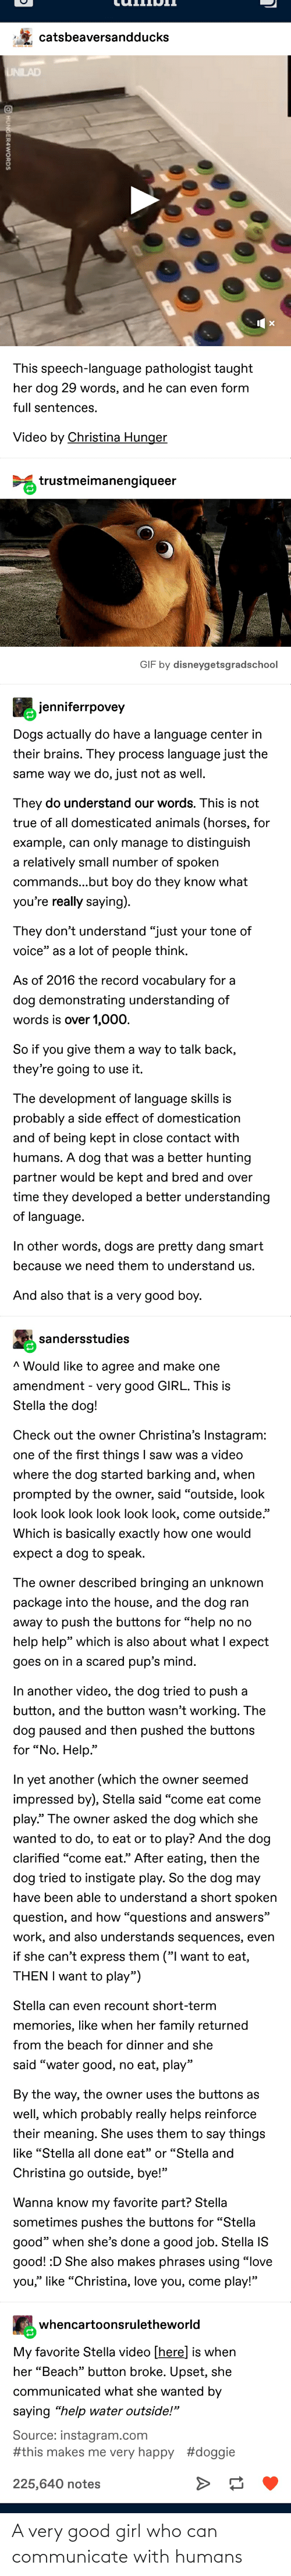 Communicate: A very good girl who can communicate with humans